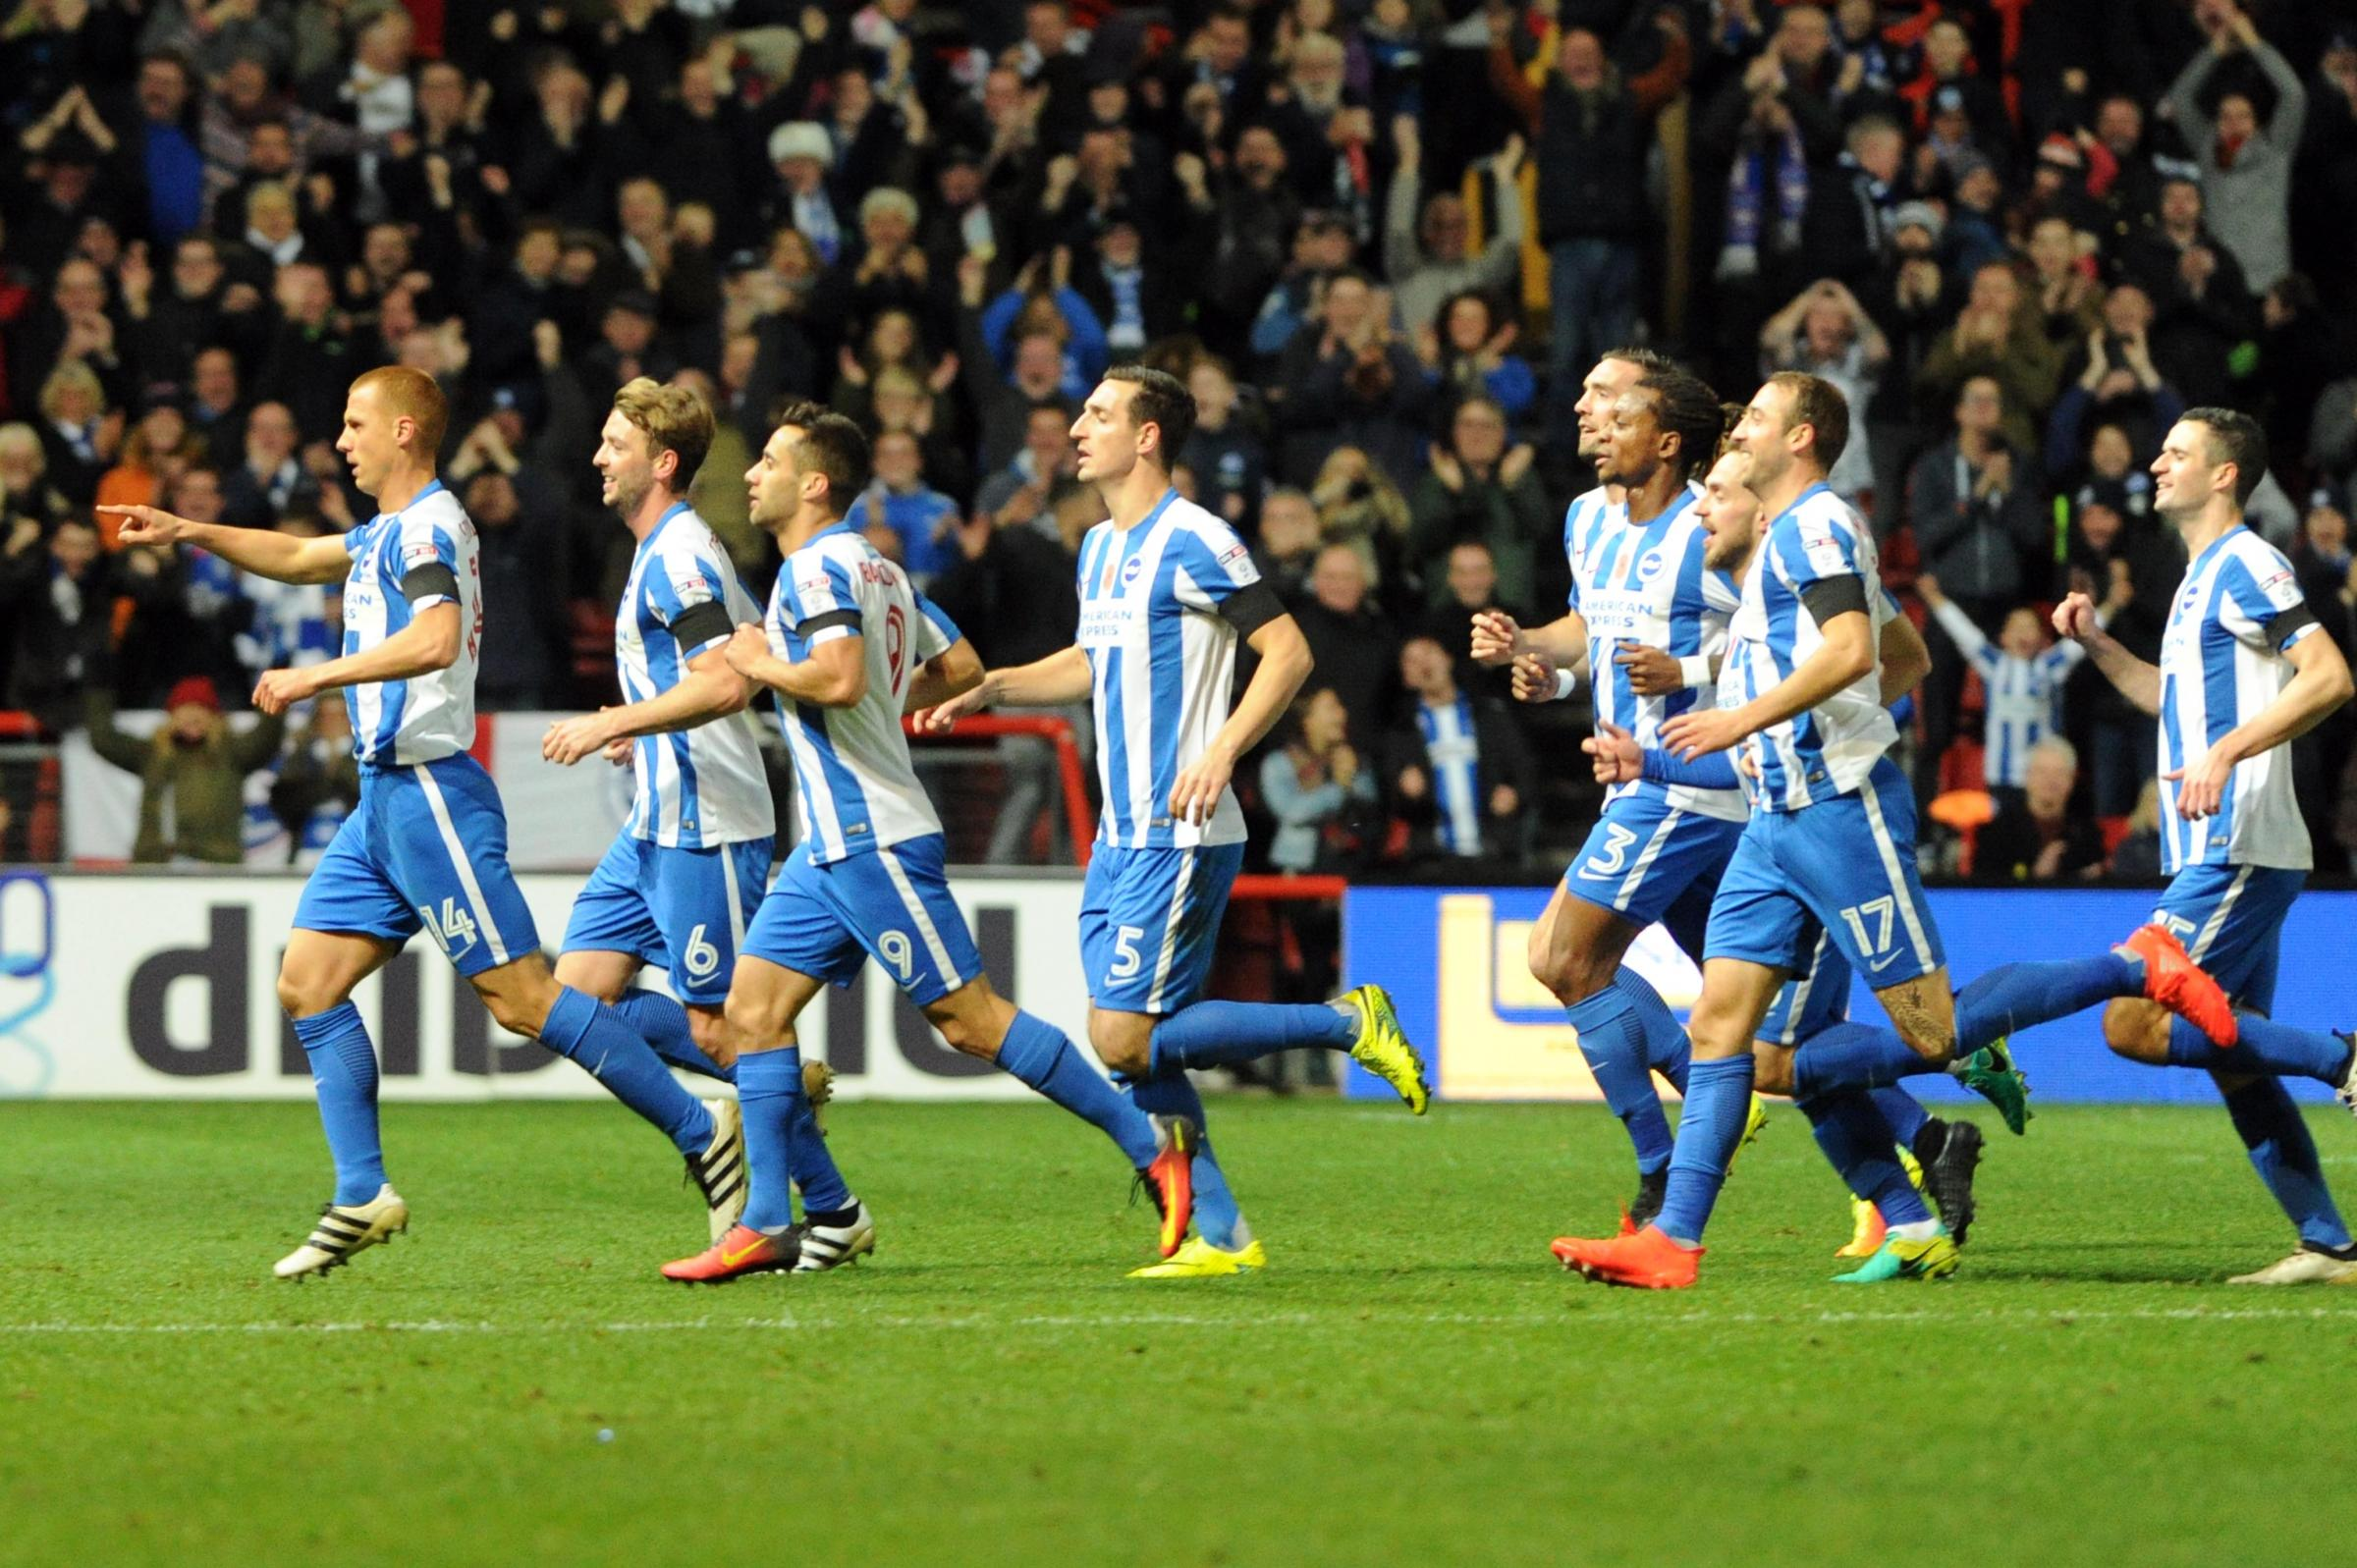 Steve Sidwell (far left) dedicated the best goal of his career to team-mate Anthony Knockaert